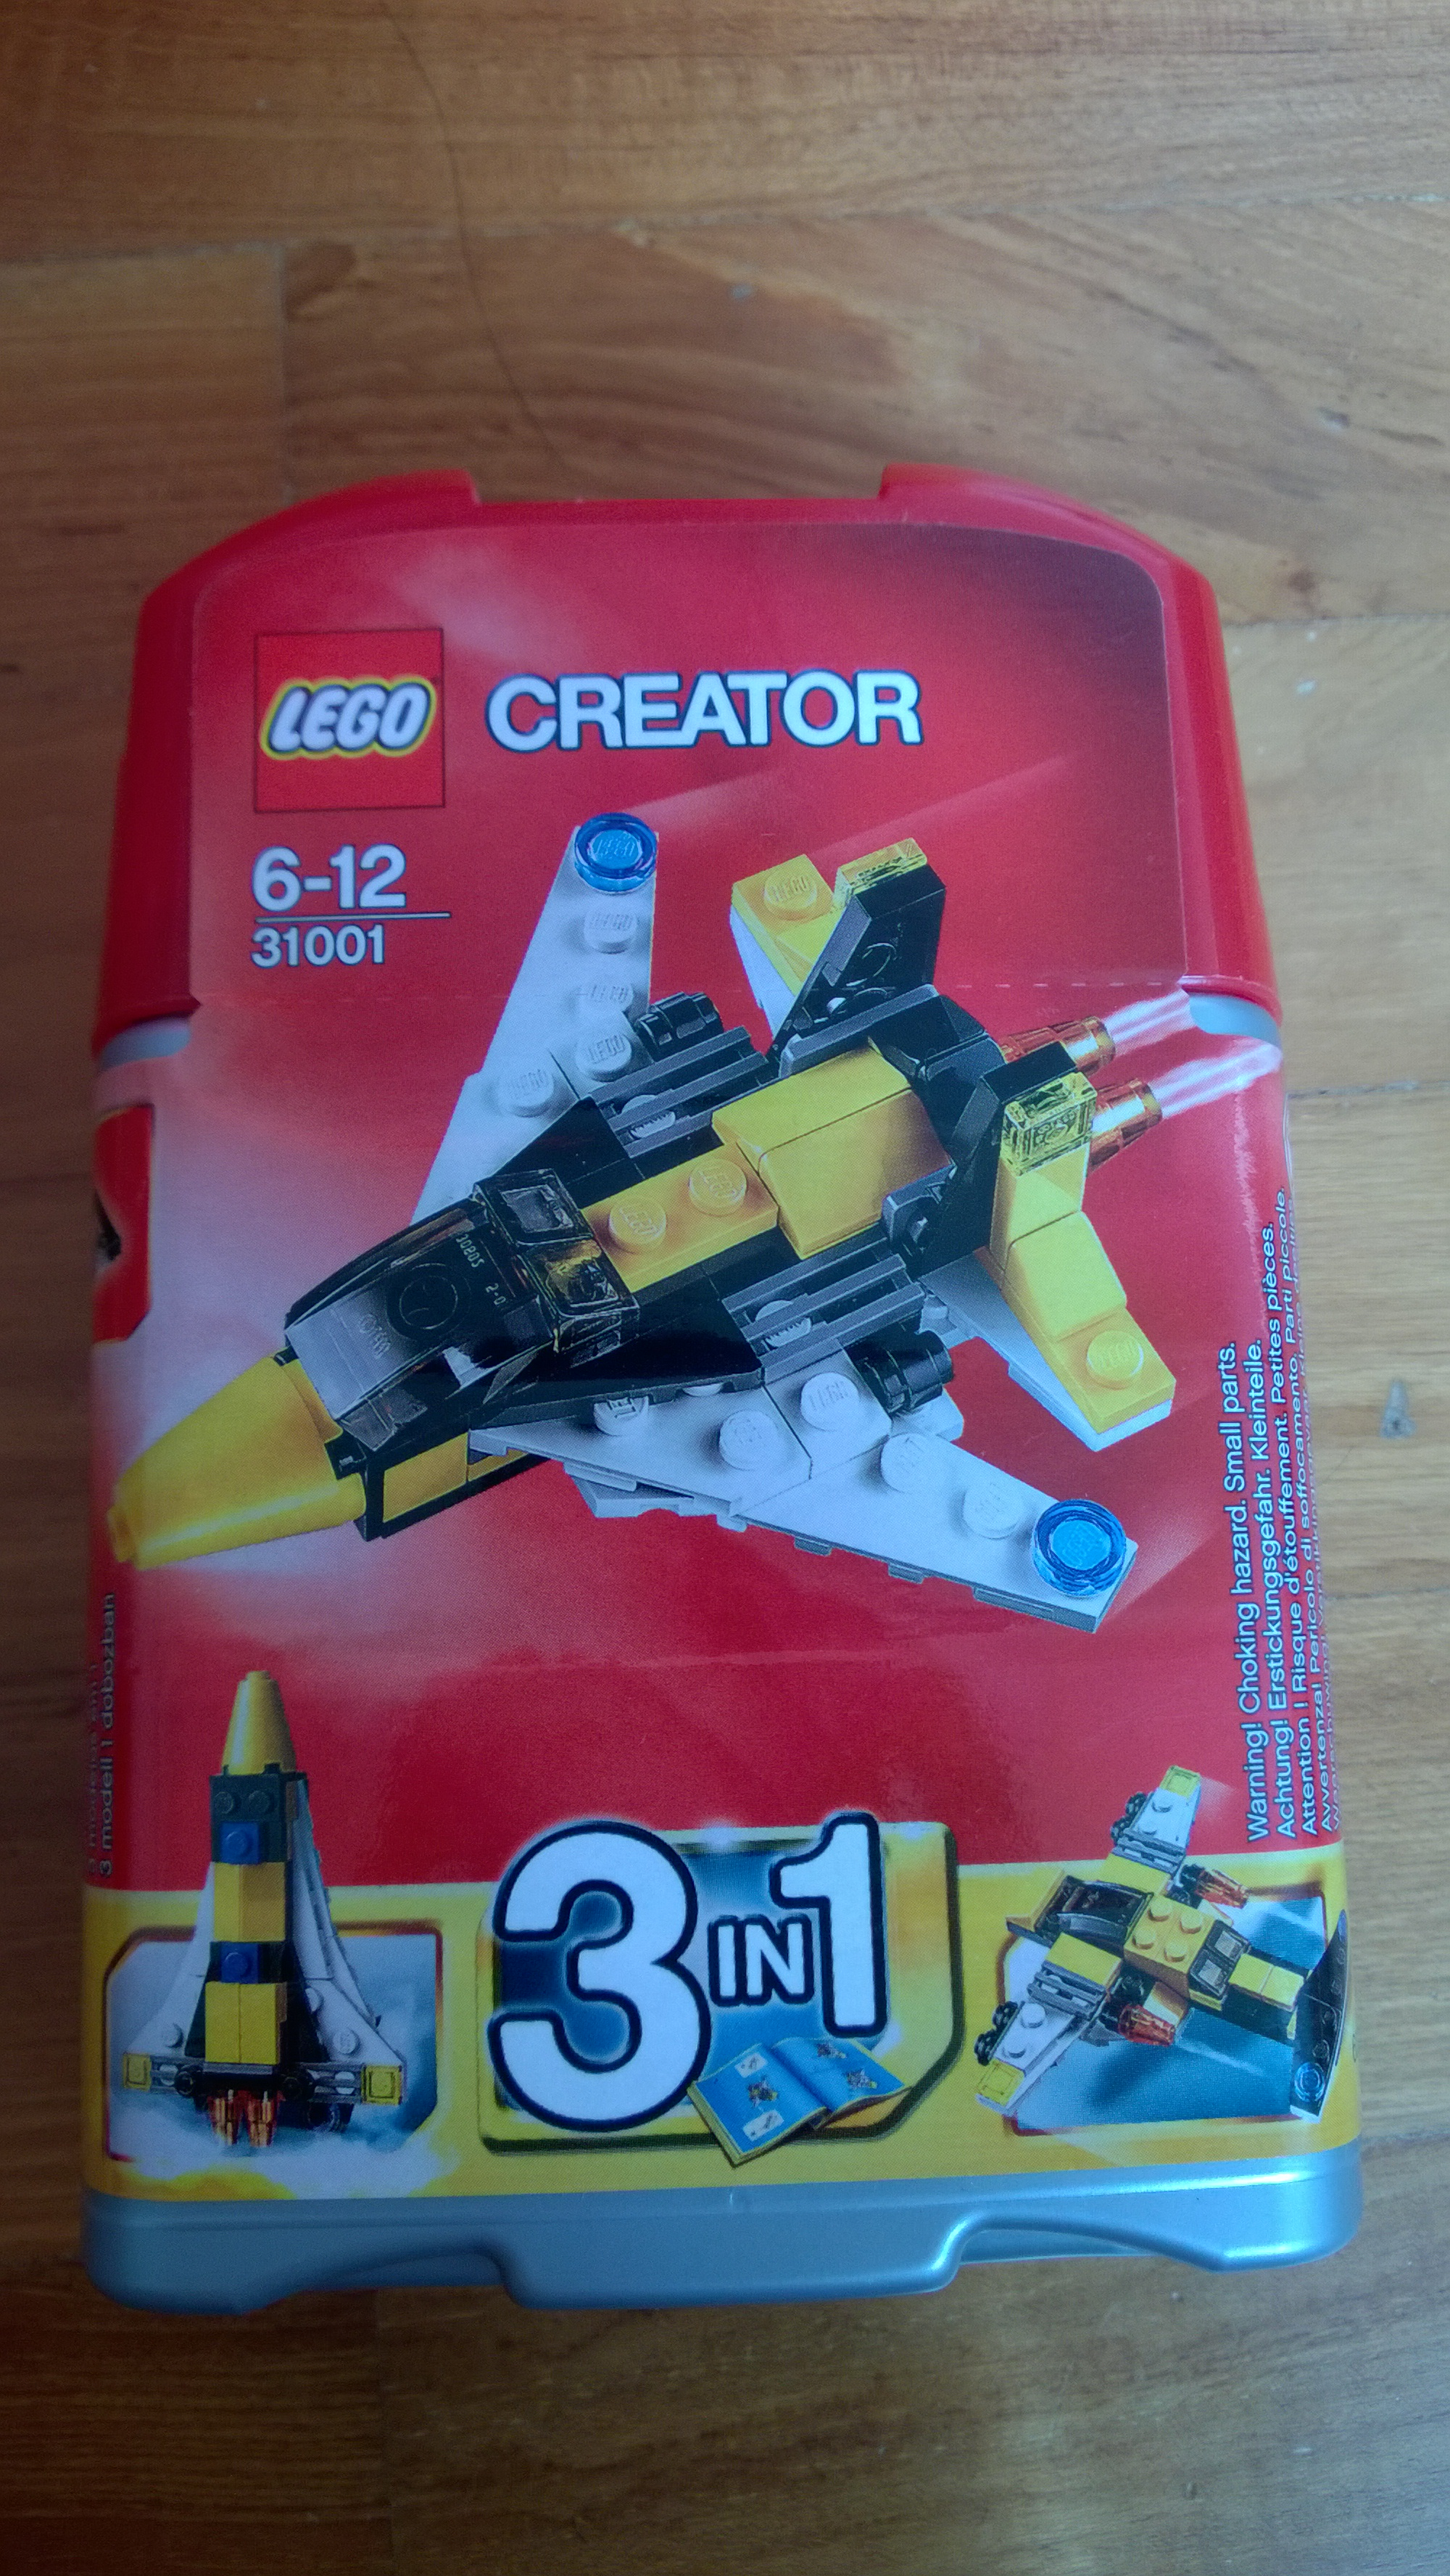 Lego 3in1 Creator 31001 Toys Games On Carousell